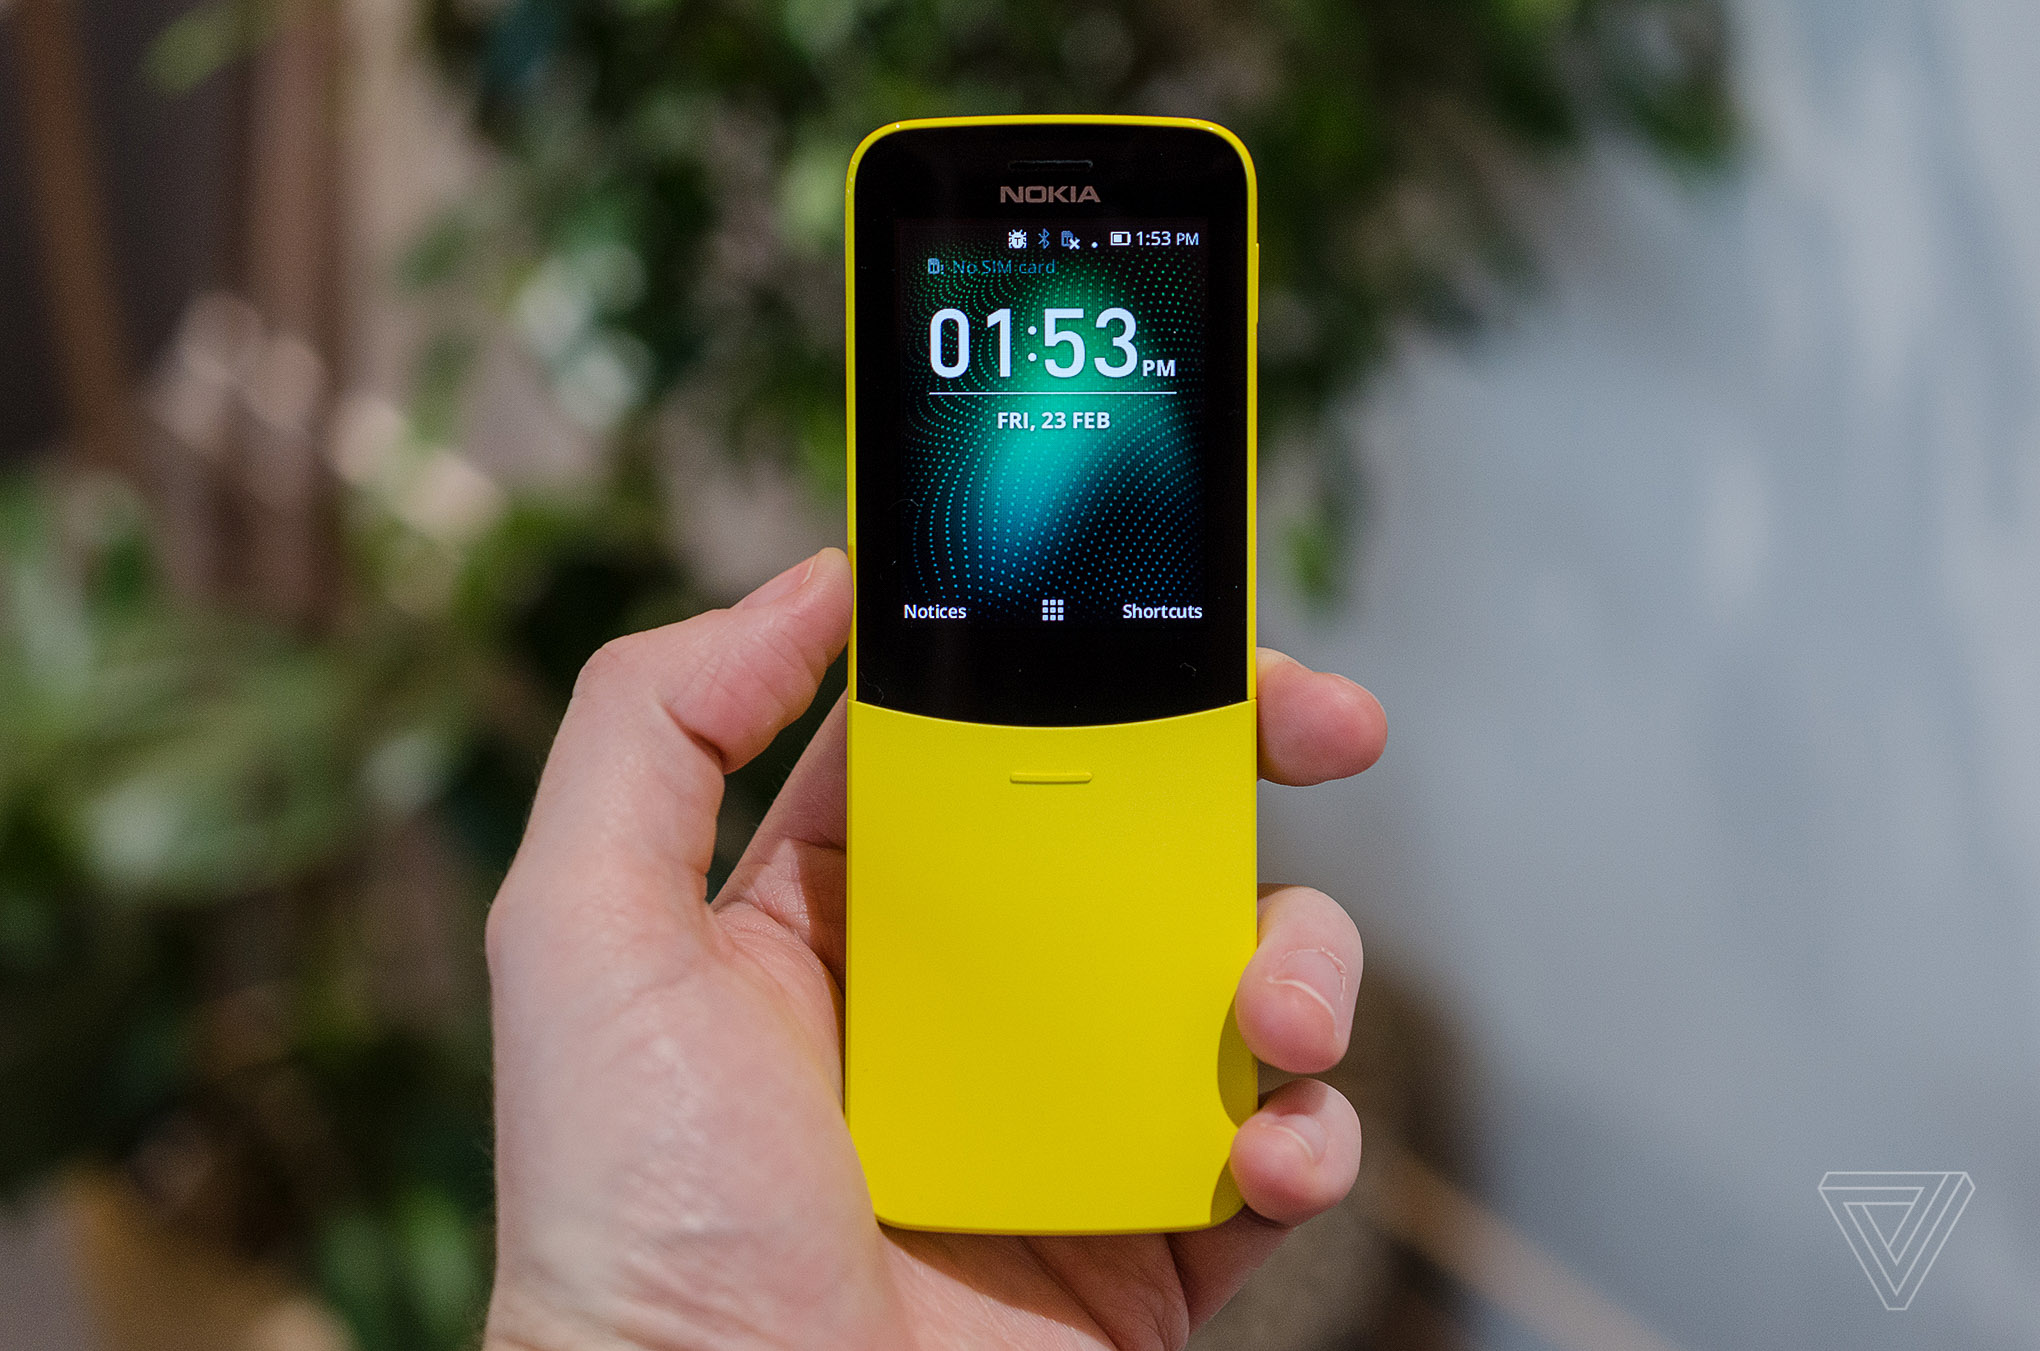 Nokia's banana phone from The Matrix is back - The Verge